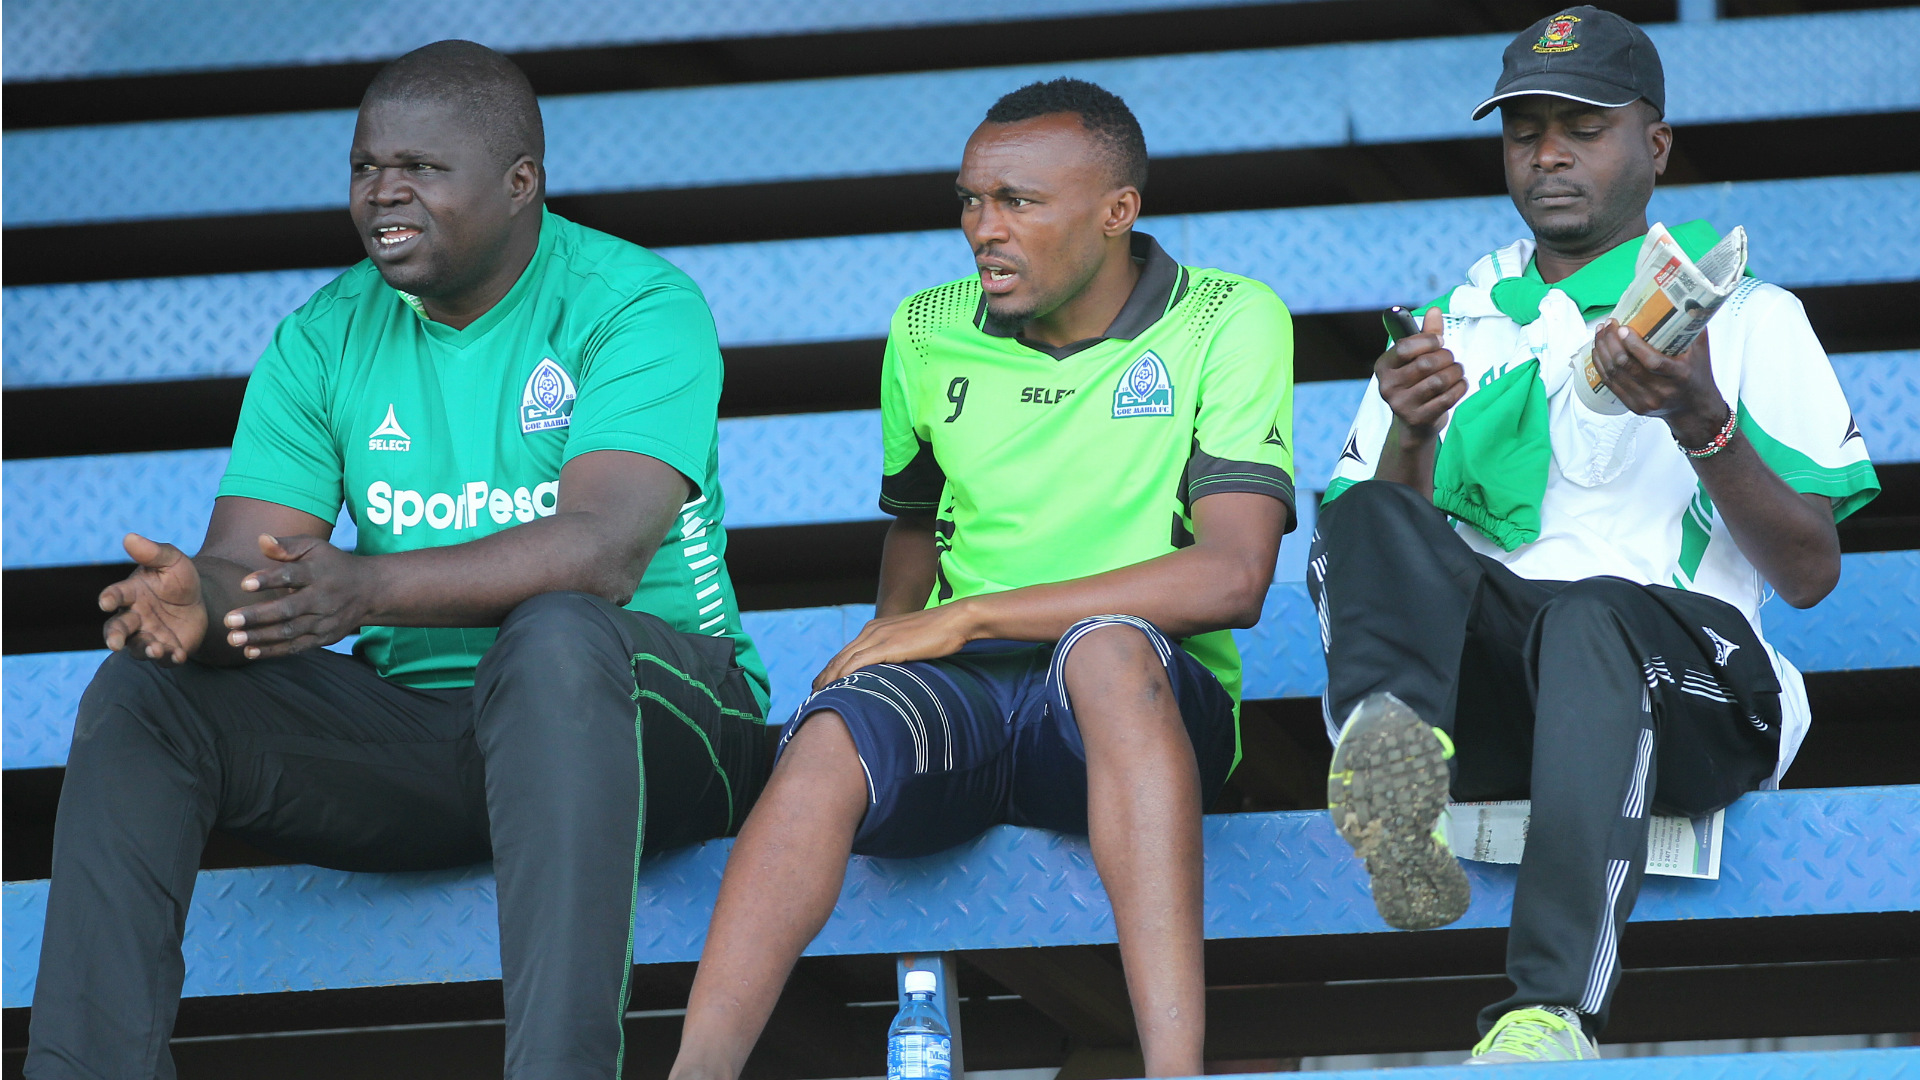 Gor Mahia striker Jacques Tuiyesenge watches from stands.